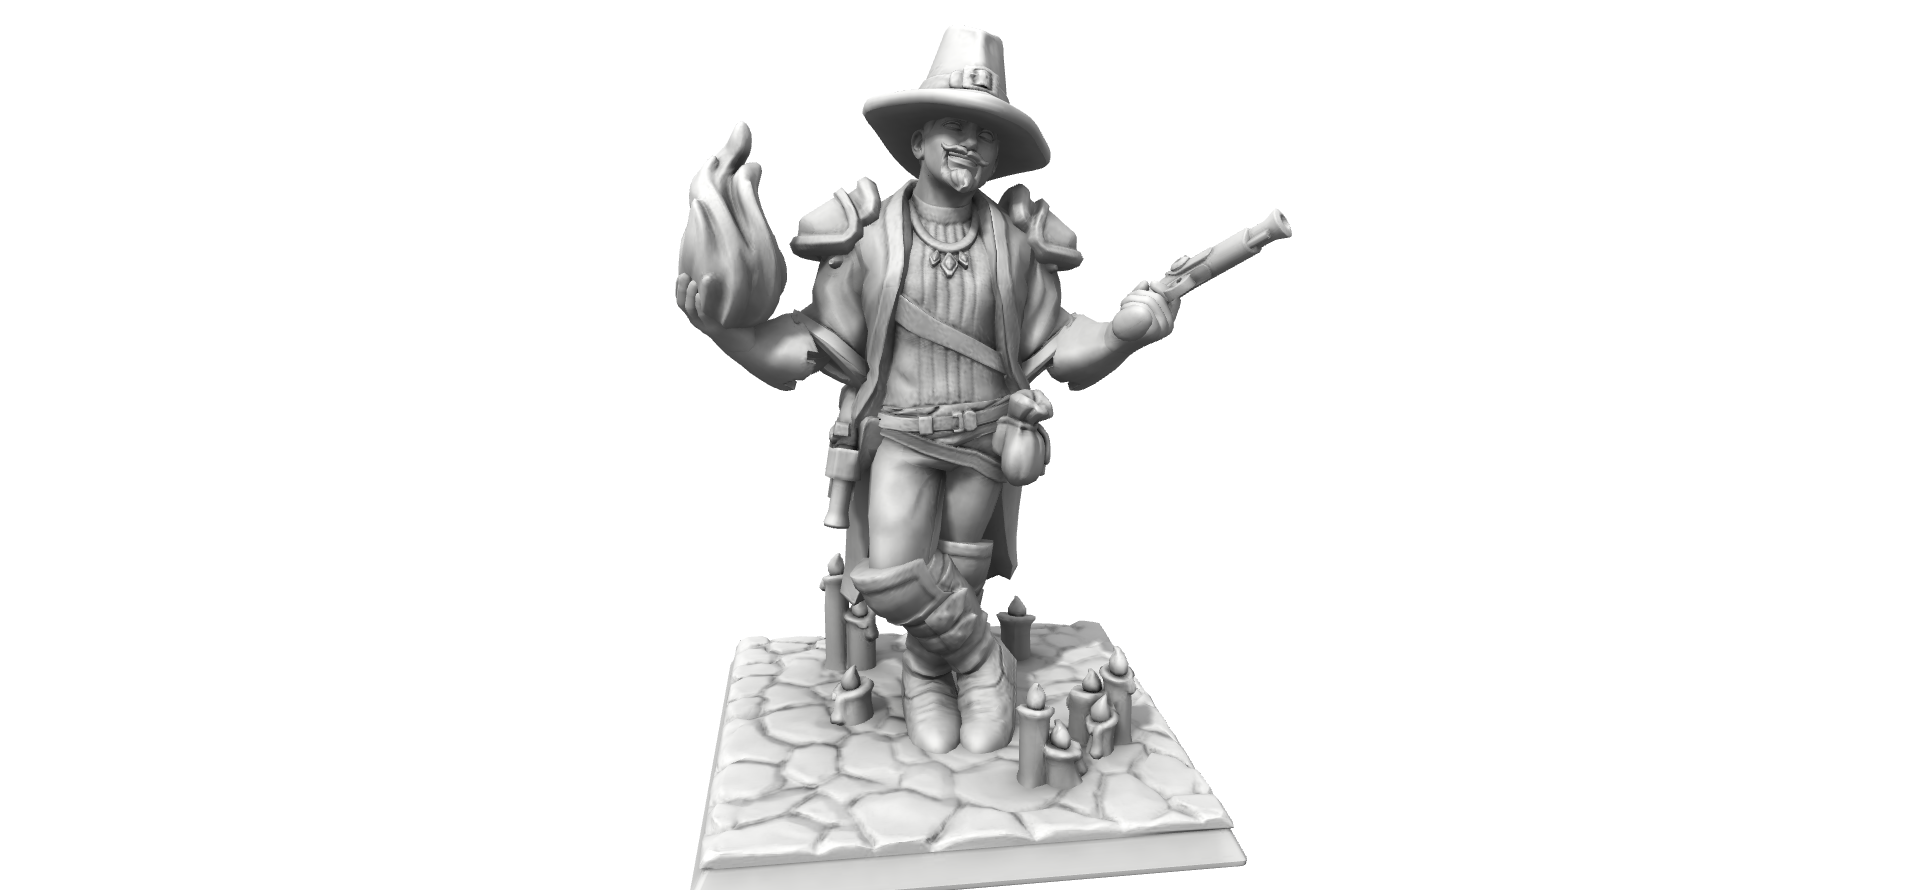 Galerie de Personnages 3D Hero Forge Herofo11